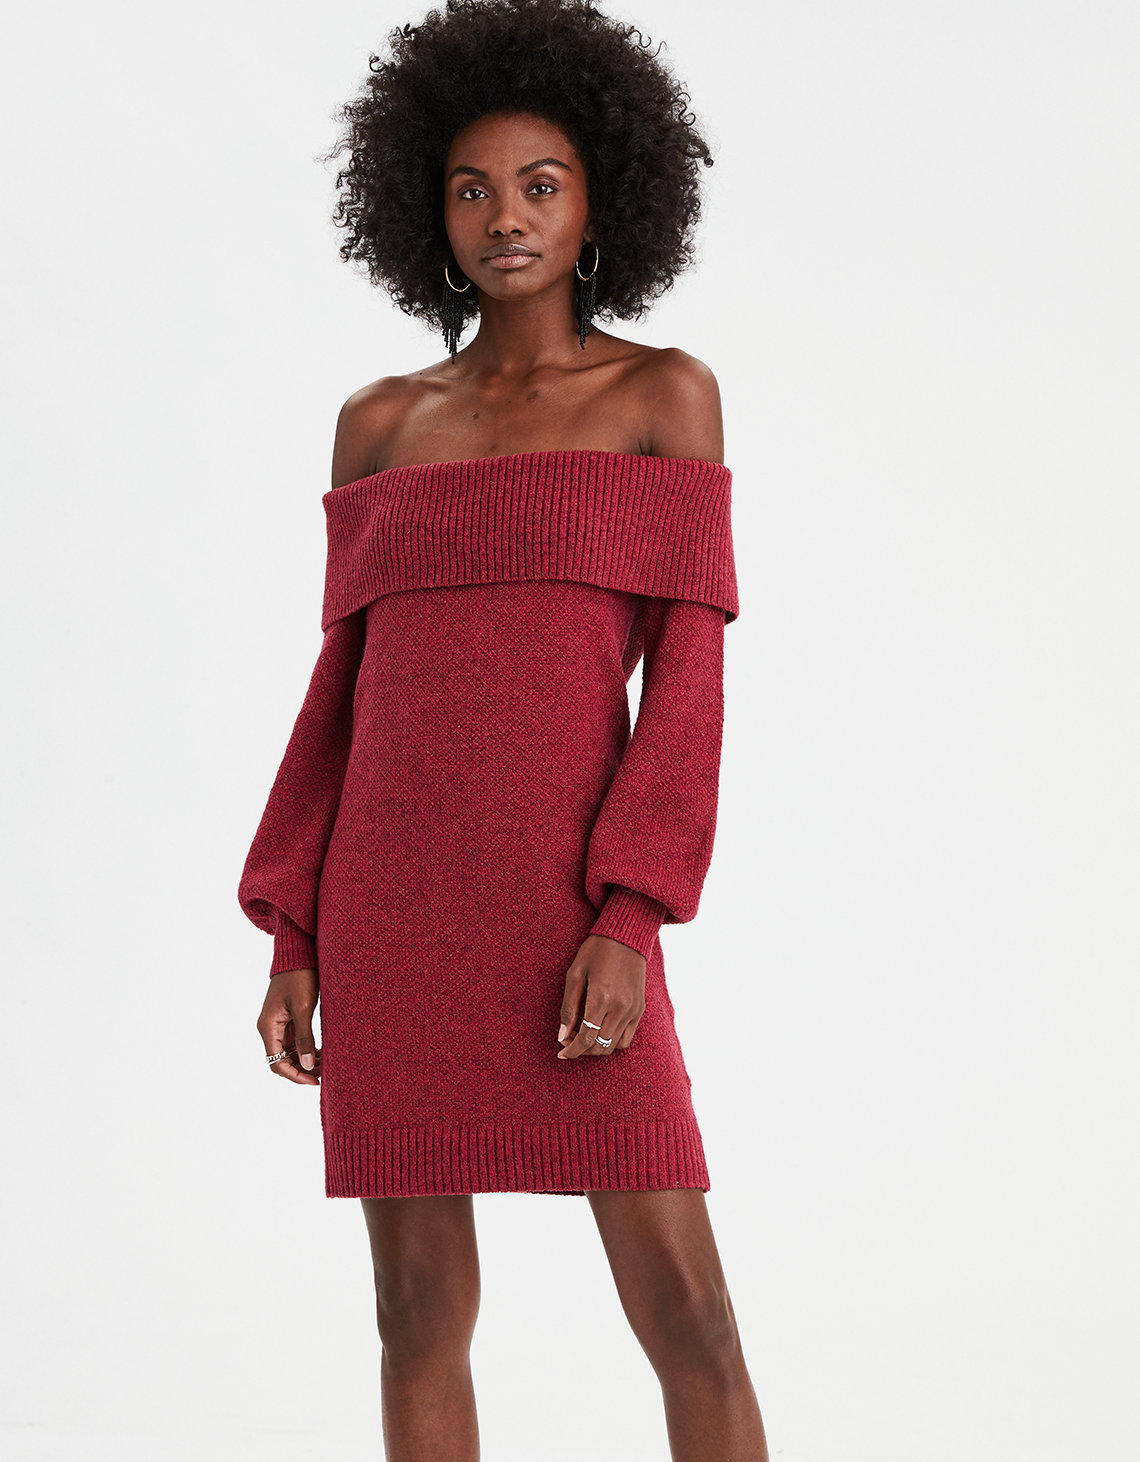 a22160c9d0a AE Off-the-Shoulder Sweater Dress. Placeholder image. Product Image